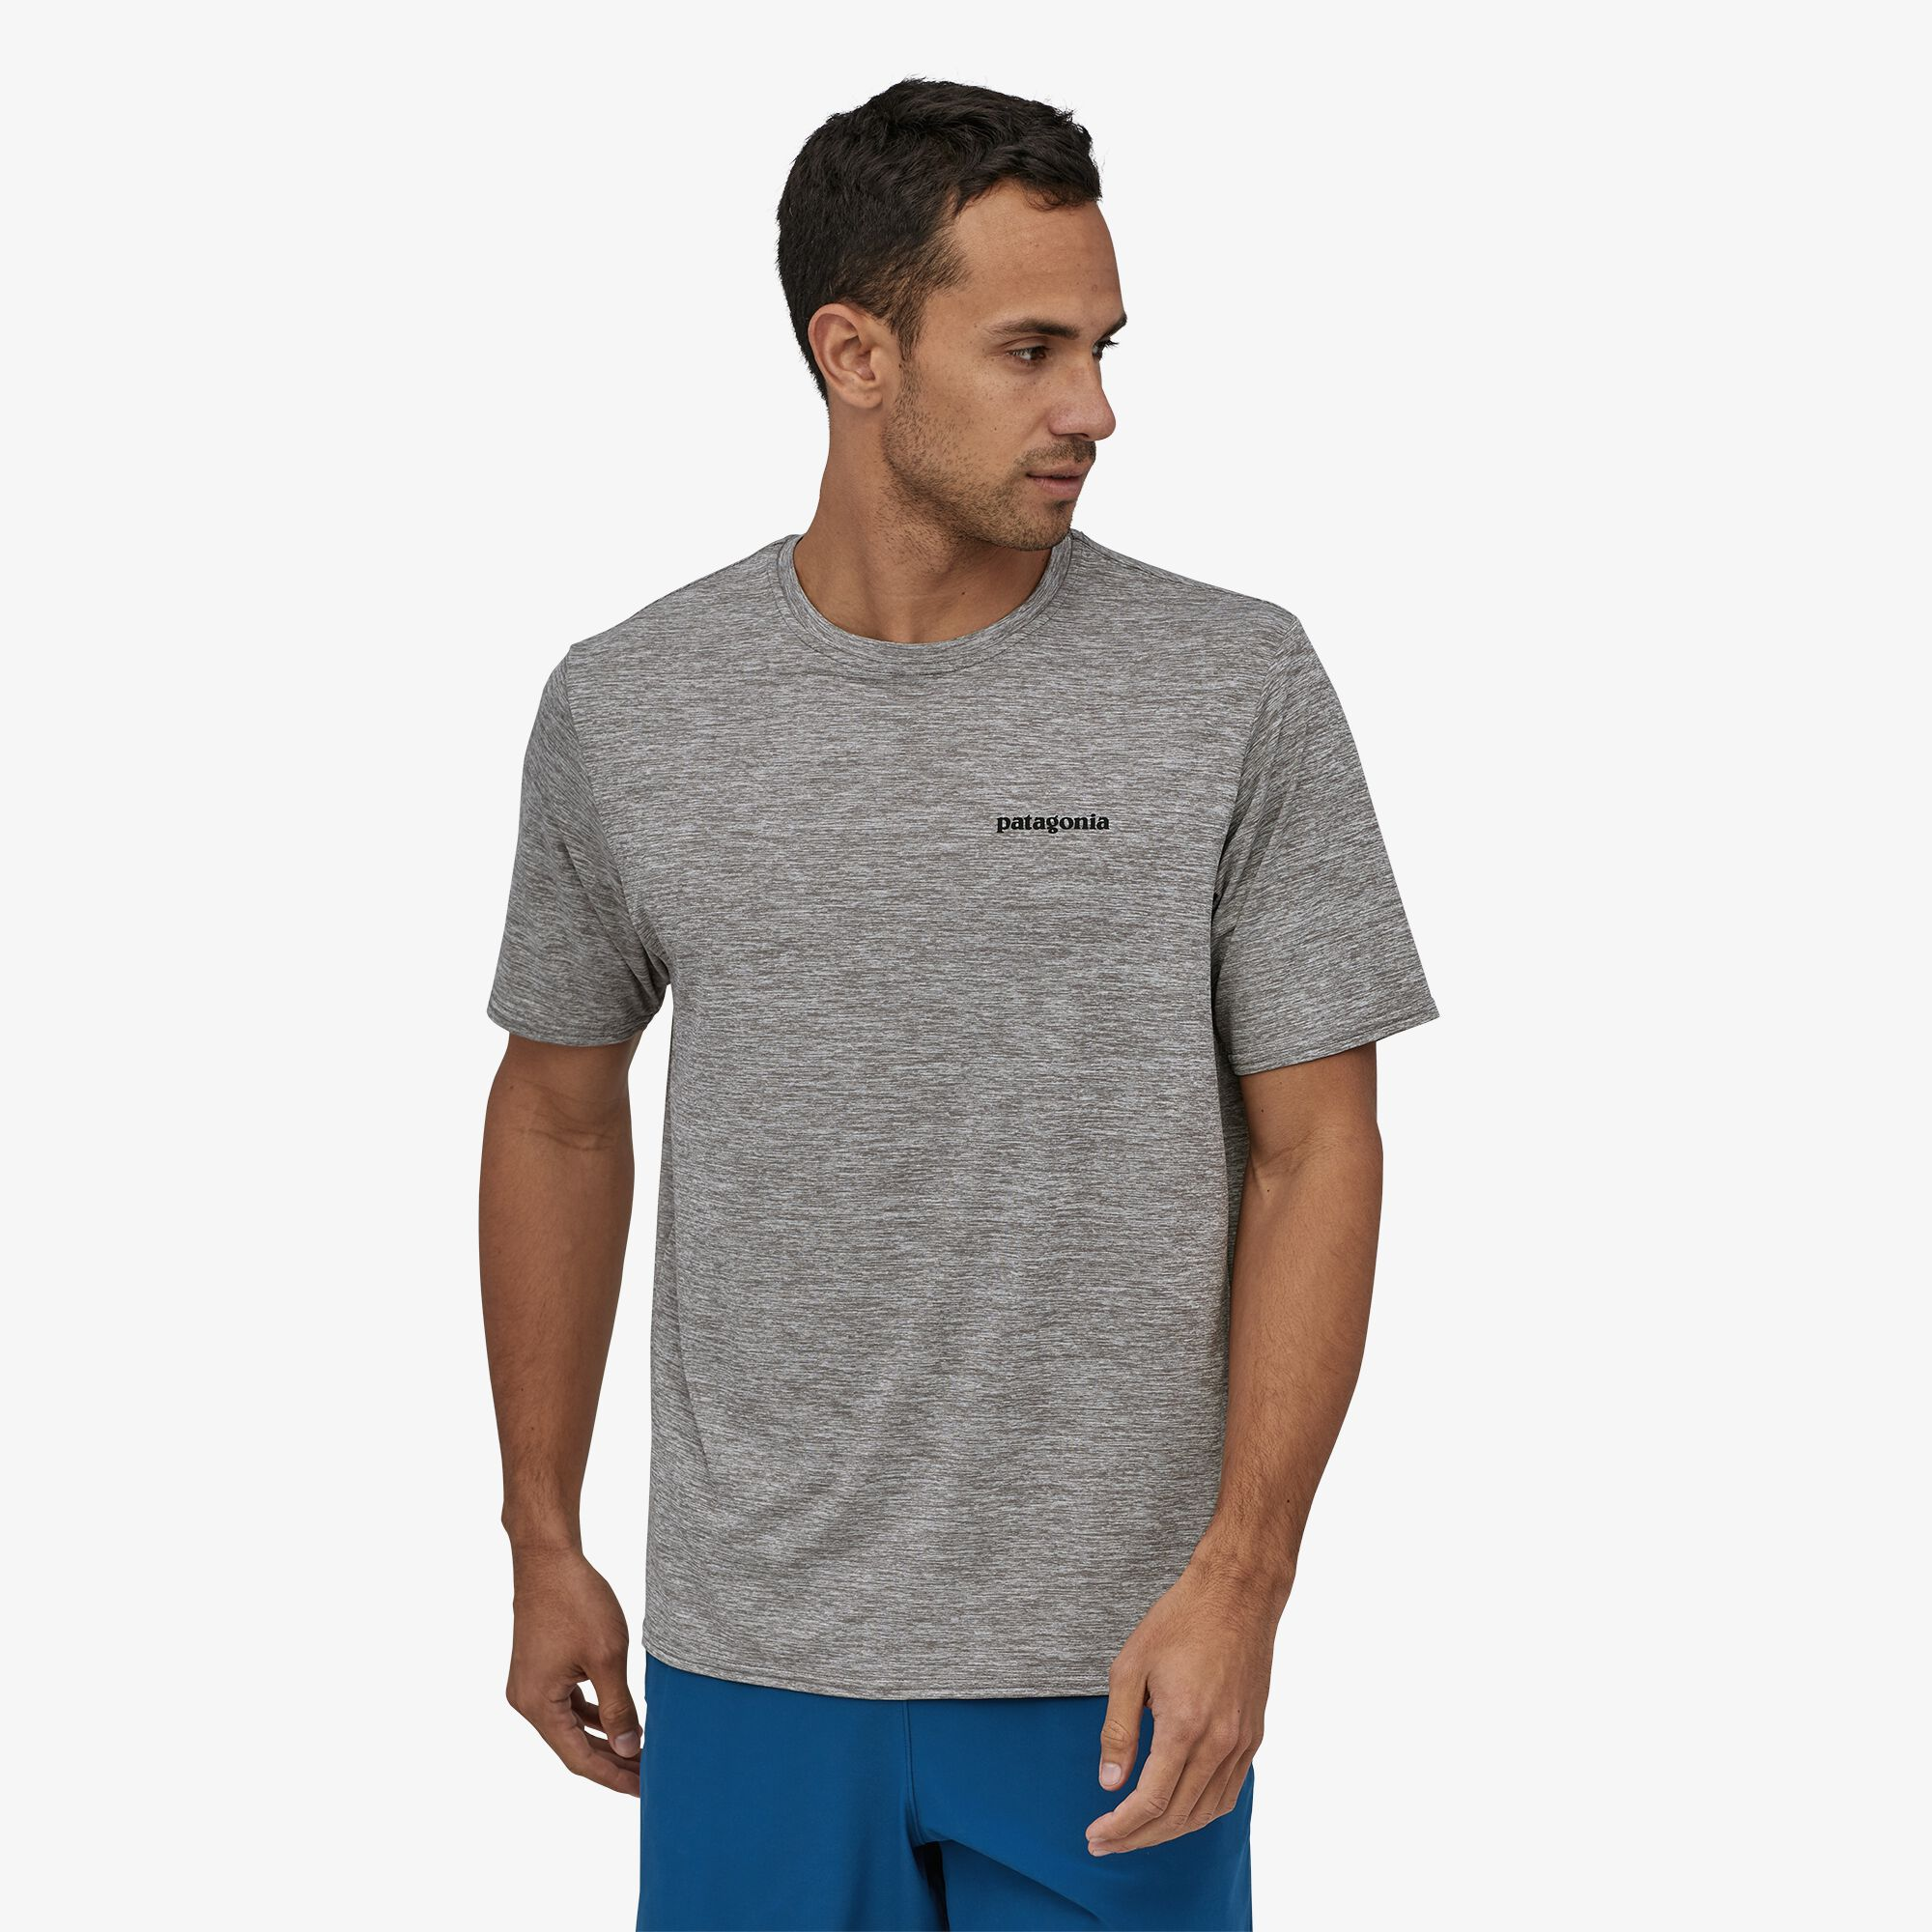 Patagonia_Cap_Cool_Daily_Graphic_shirt_feather_grey_Model